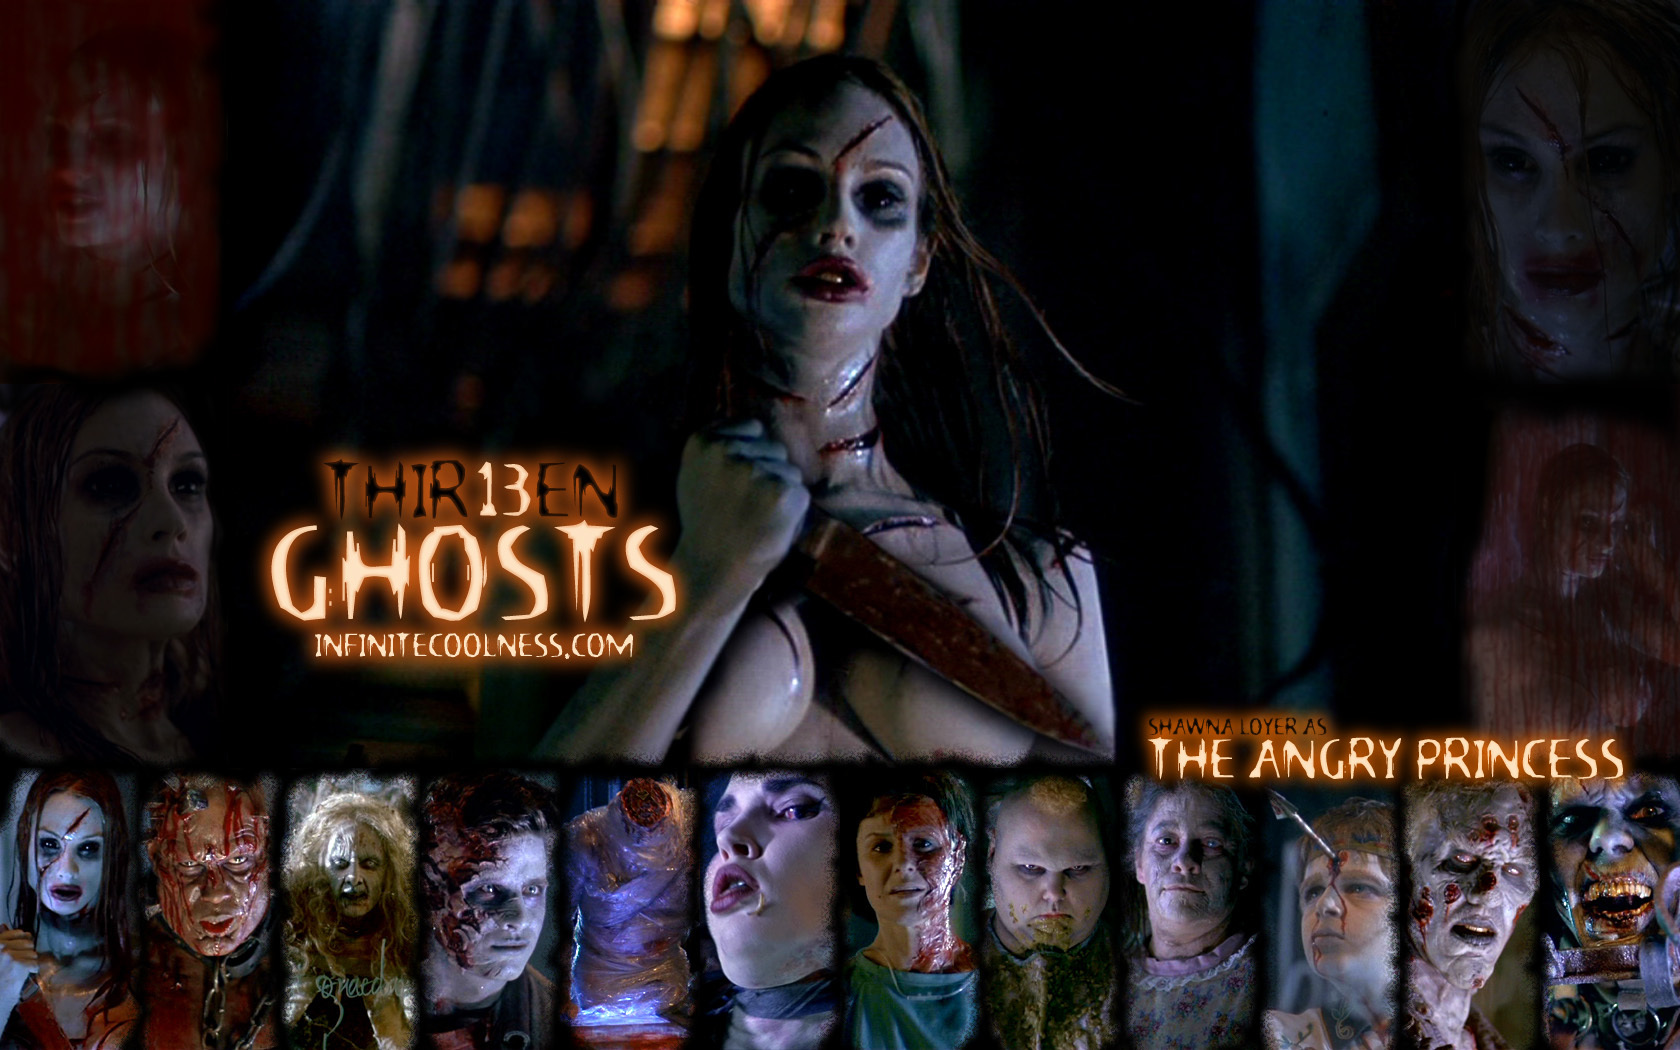 Thirteen ghosts naked women porncraft image